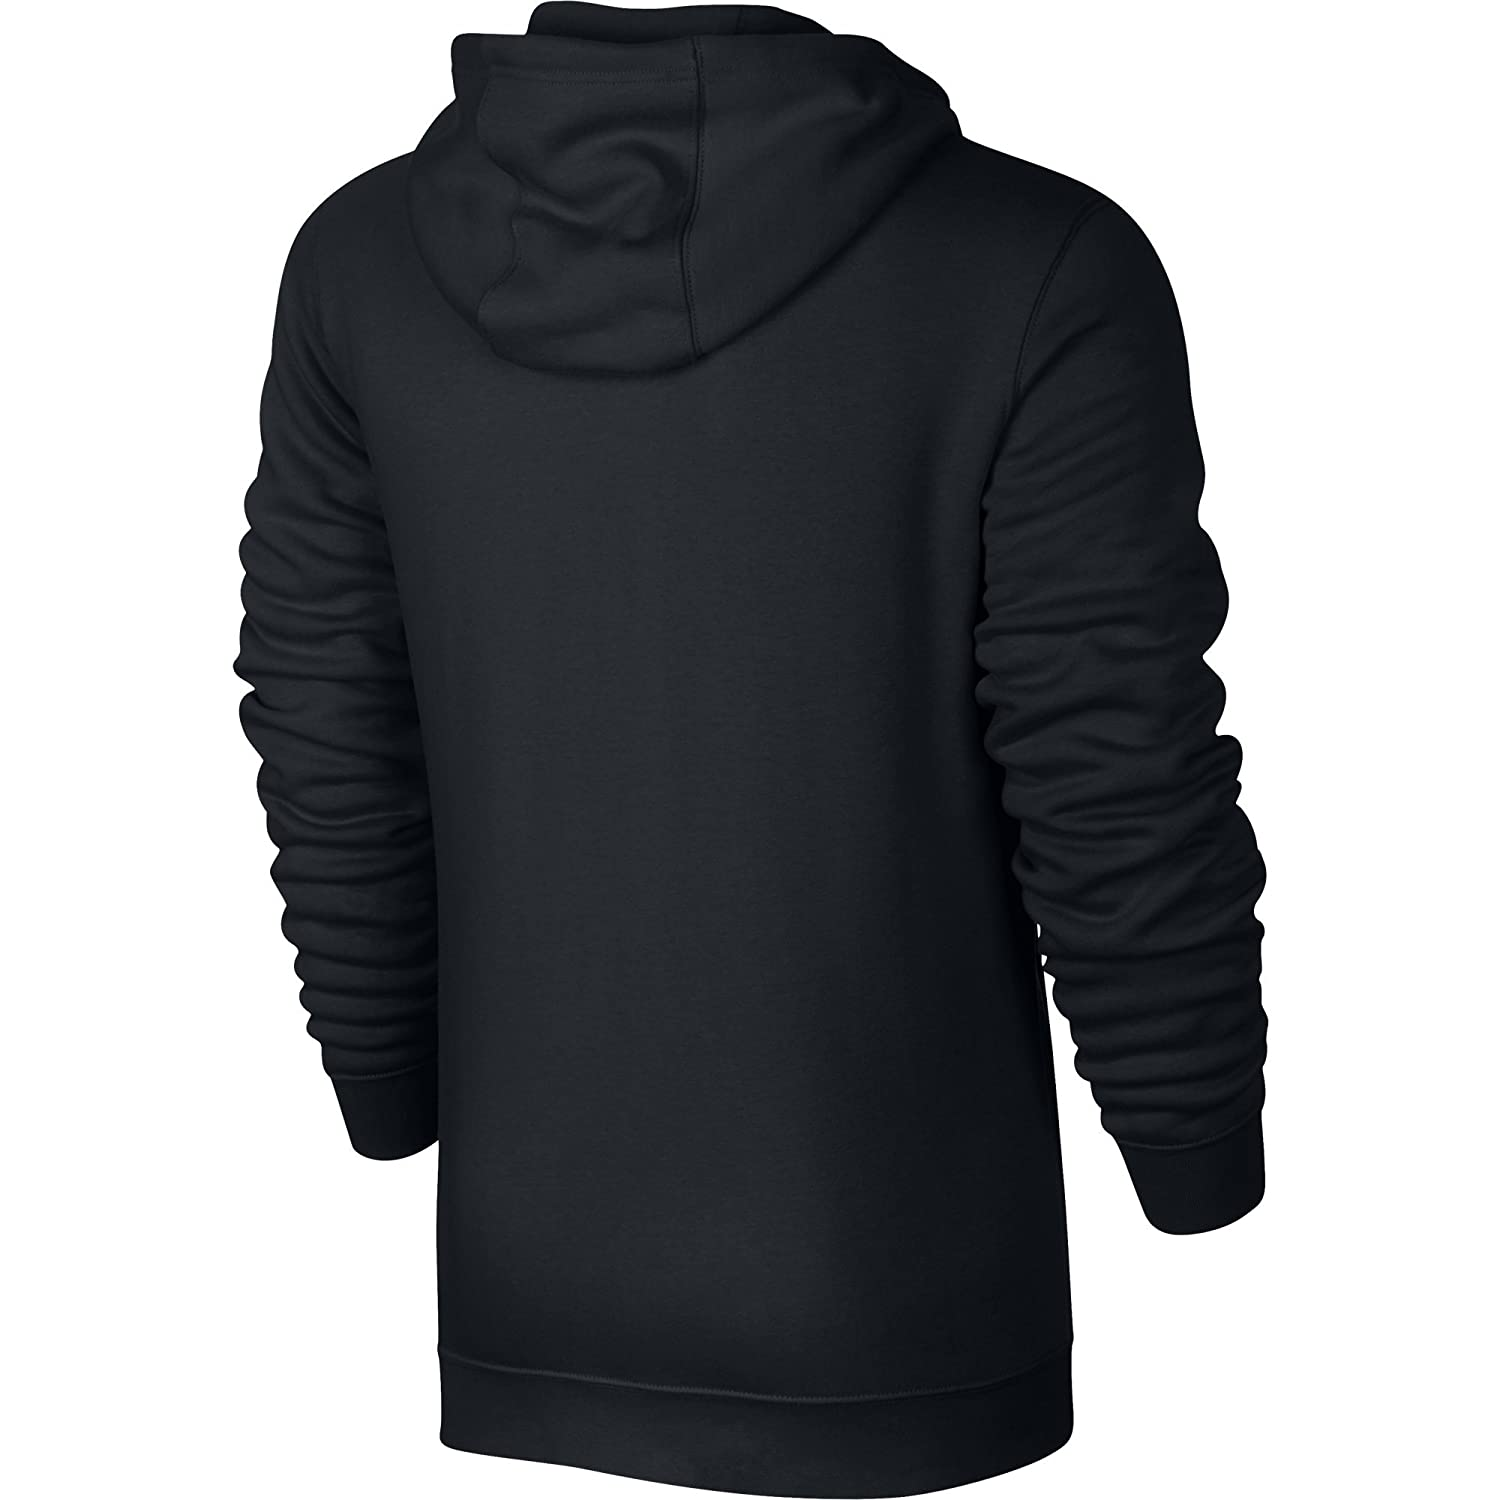 Men's Nike Sportswear Club Full Zip Up Hoodie